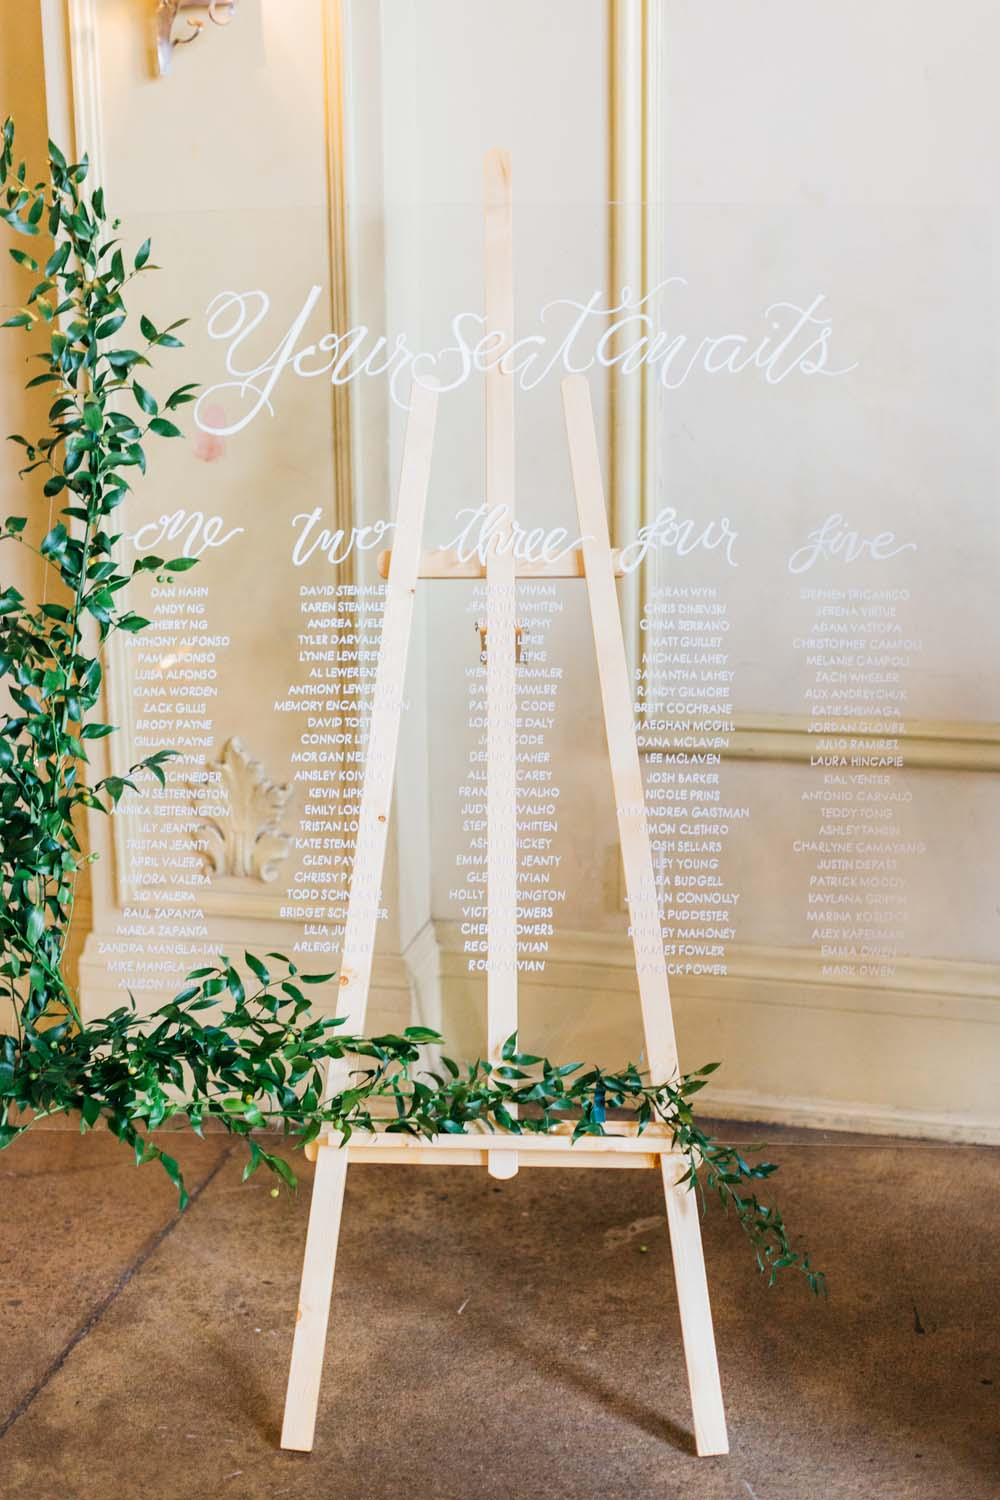 A Bright and Airy September Wedding in Toronto, Ontario - Seating Chart